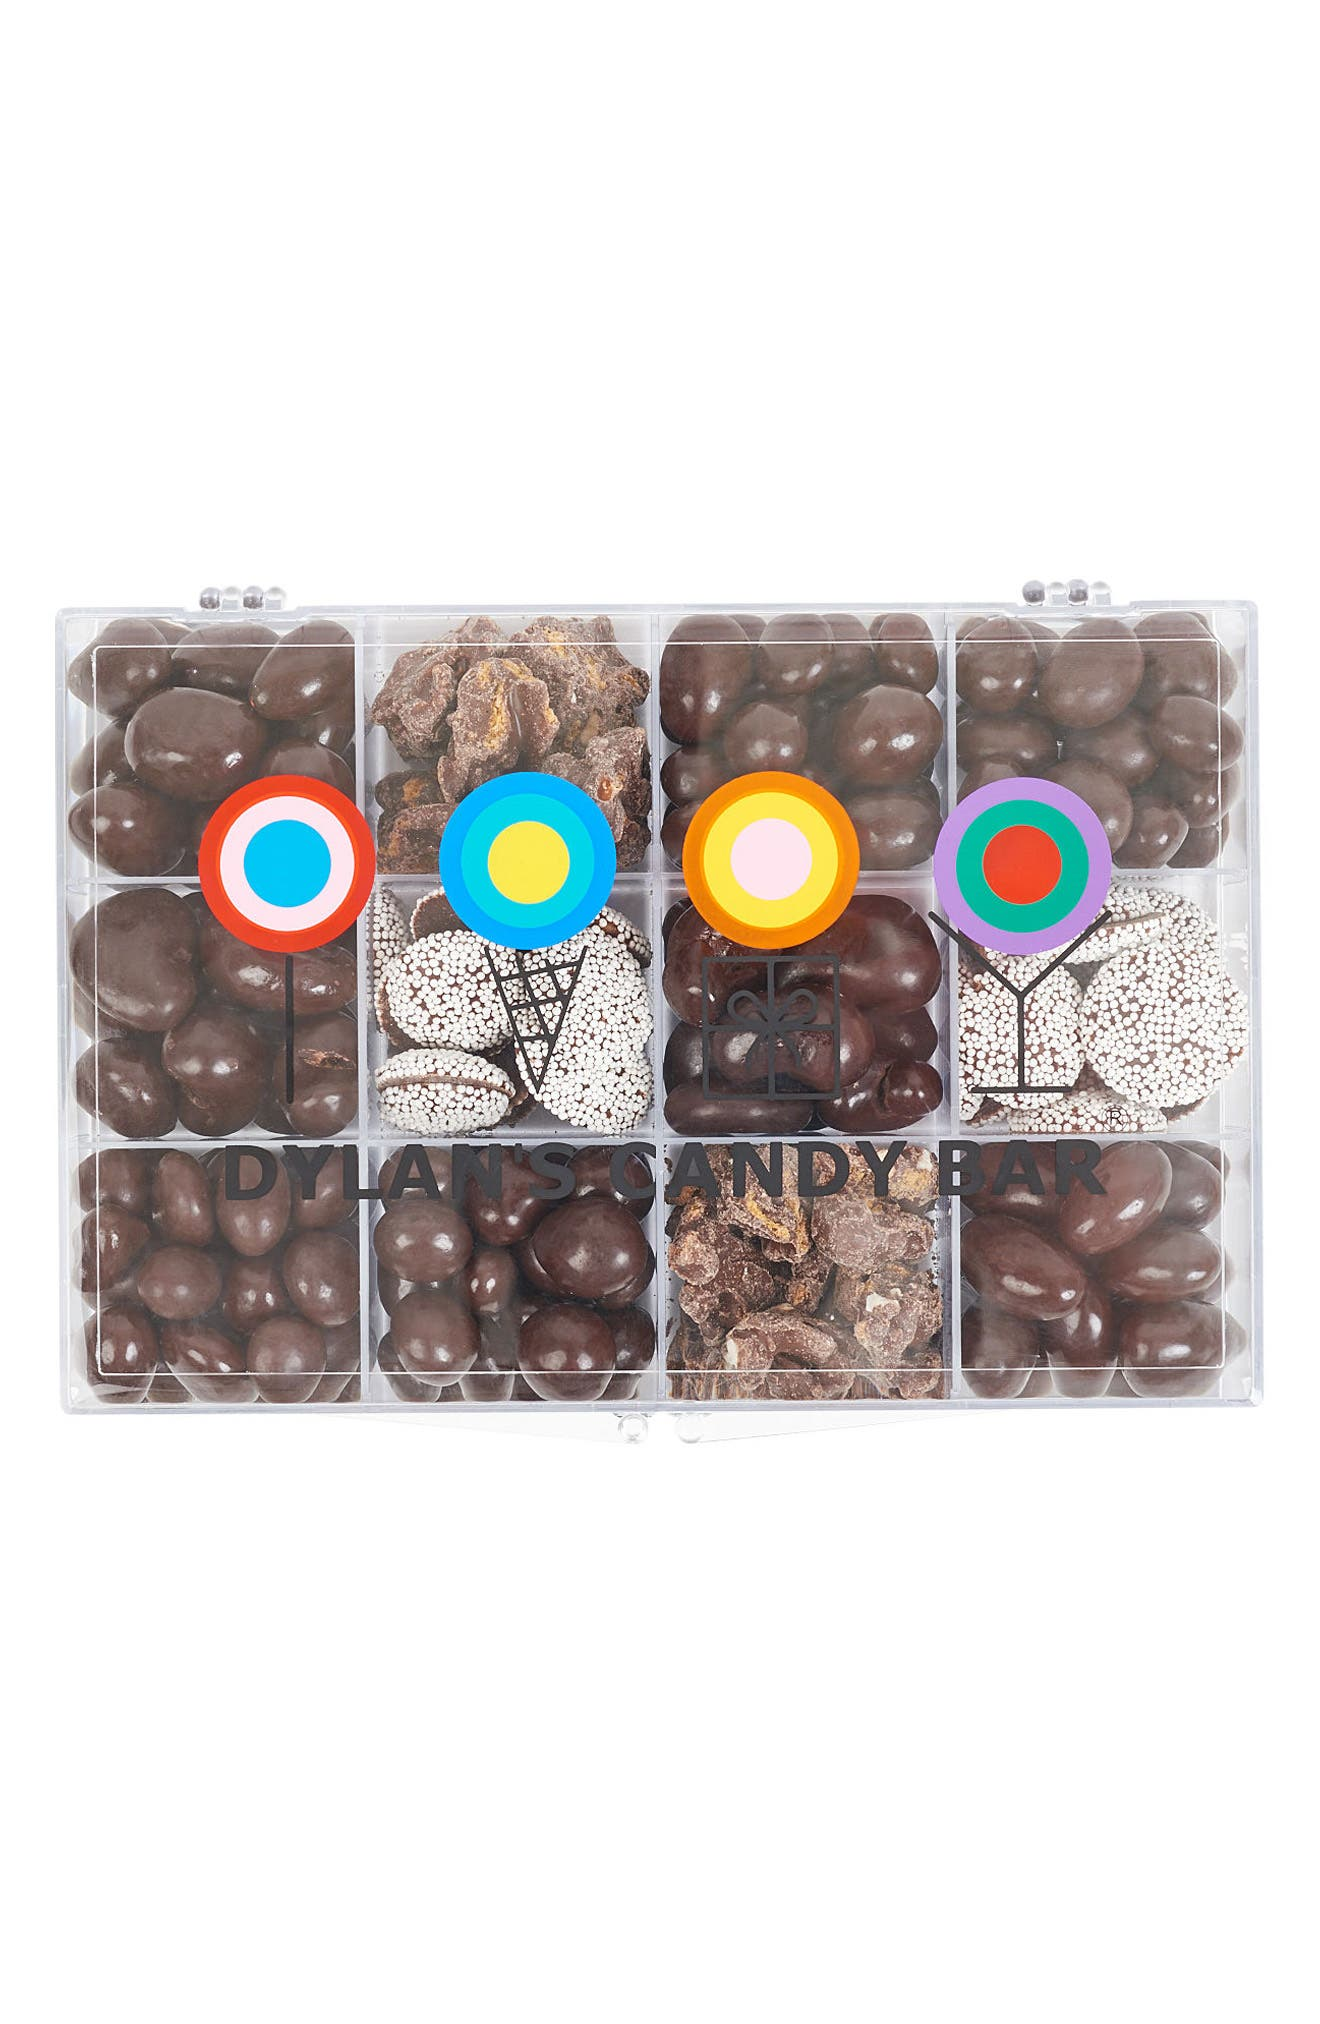 Dylan's Candy Bar Signature Dark Chocolate Tackle Box